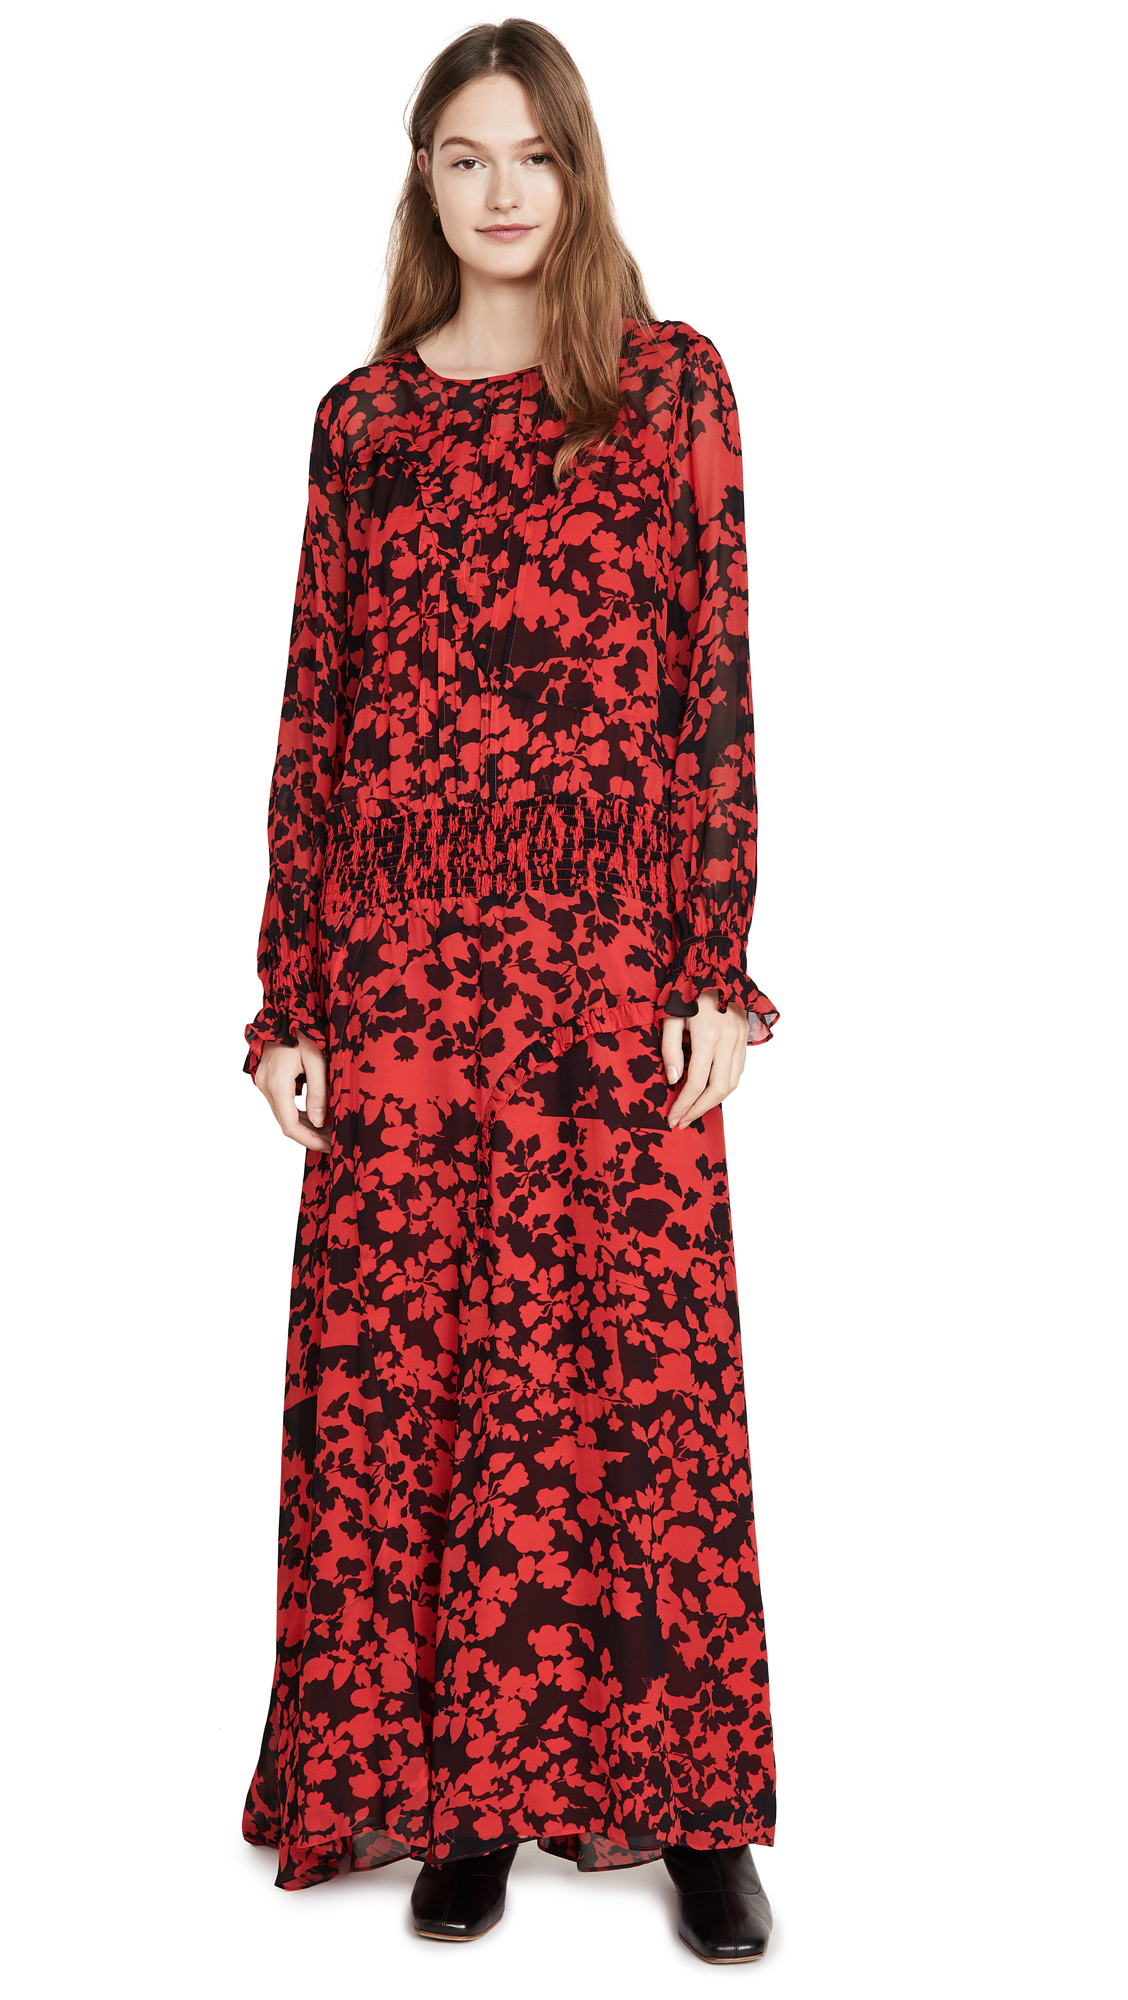 Preen By Thornton Bregazzi Preen Line Esme Dress - 60% Off Sale